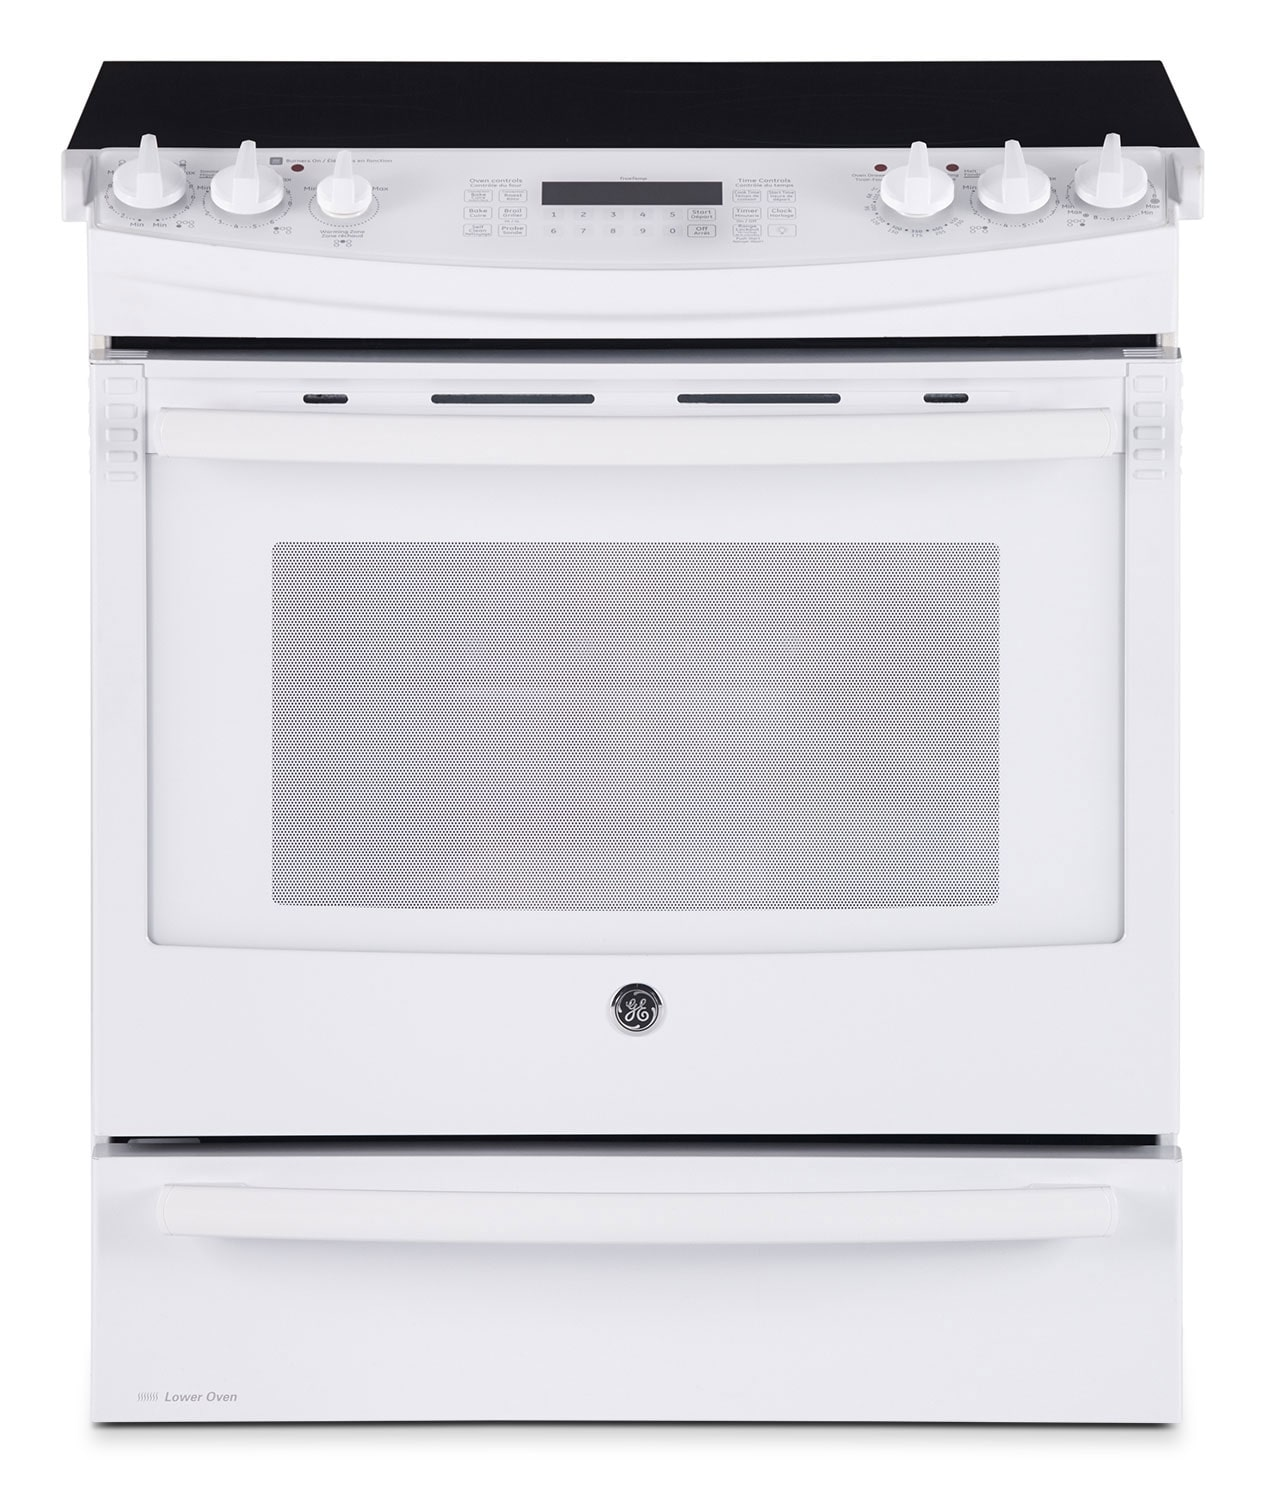 GE White Slide In Electric Convection Range 66 Cu Ft